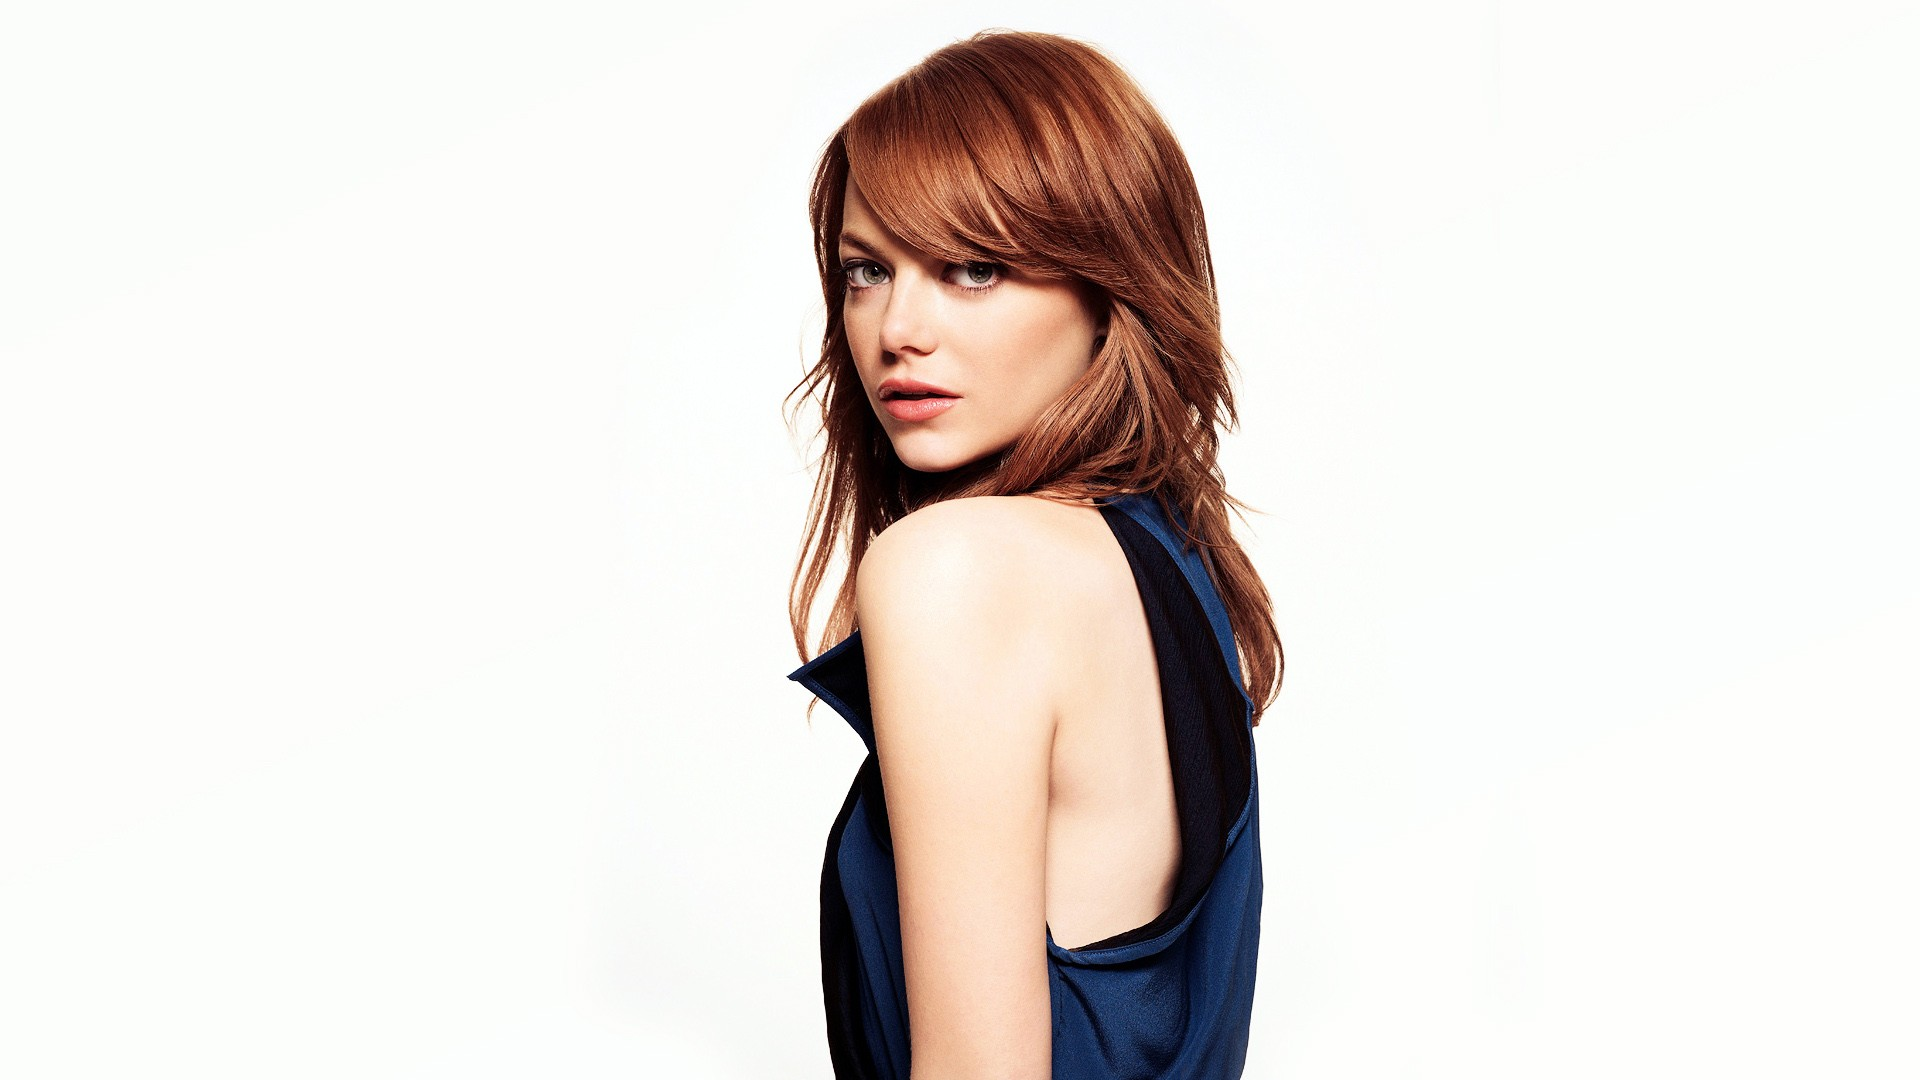 Wallpaper For Teenage Girl Iphone Emma Stone 18 Wallpapers Hd Wallpapers Id 15517